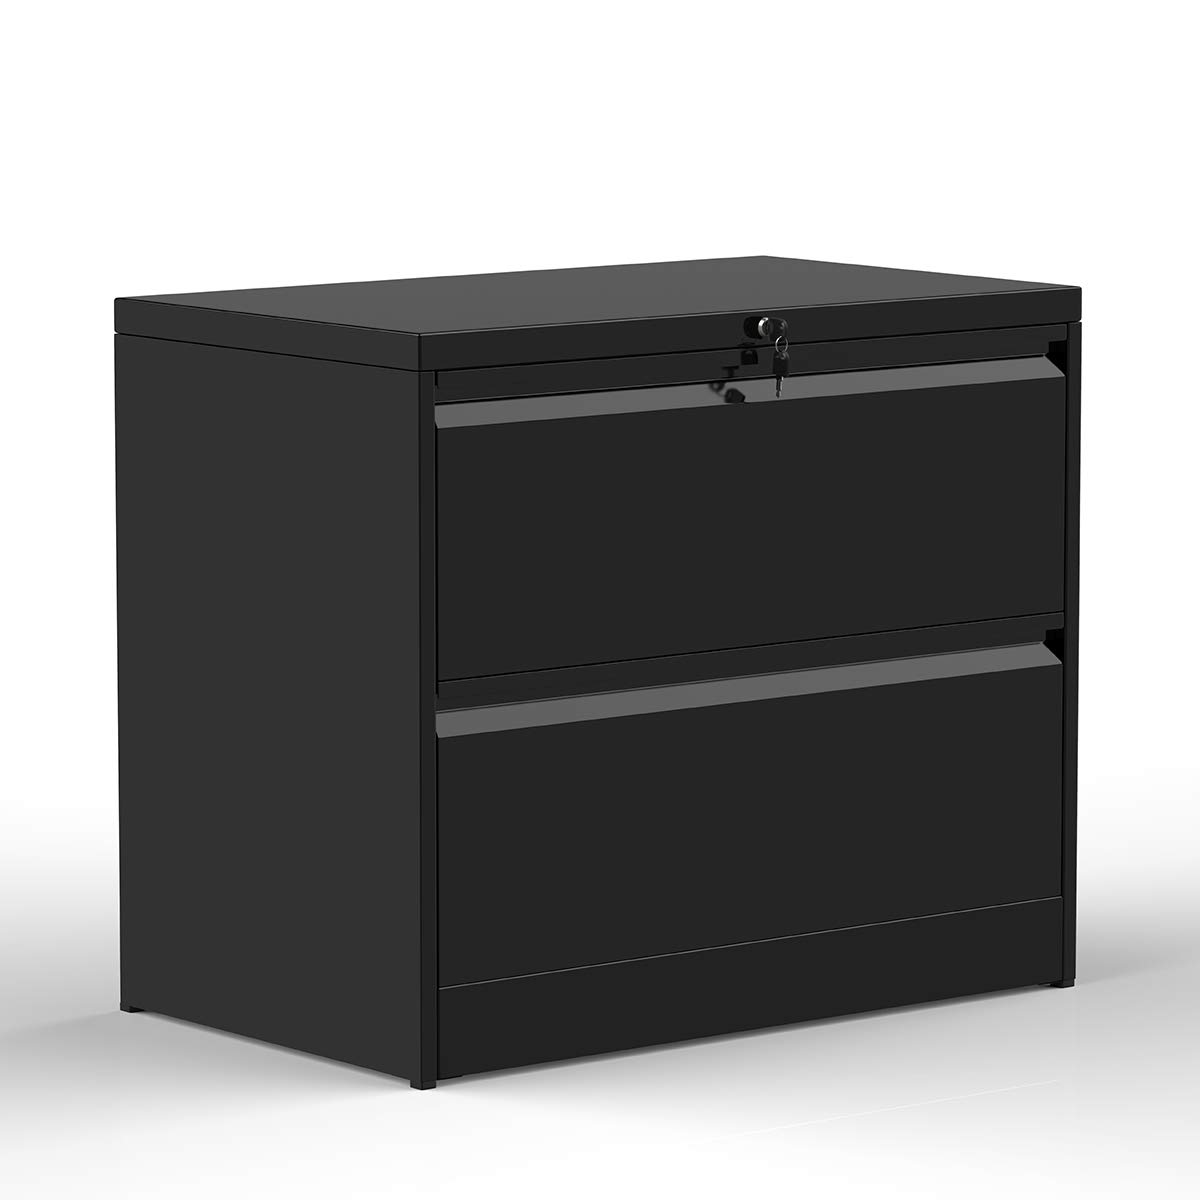 ModernLuxe File Cabinet, Black Lockable Heavy Duty Metal Lateral File Cabinet with 2 Drawers by ModernLuxe